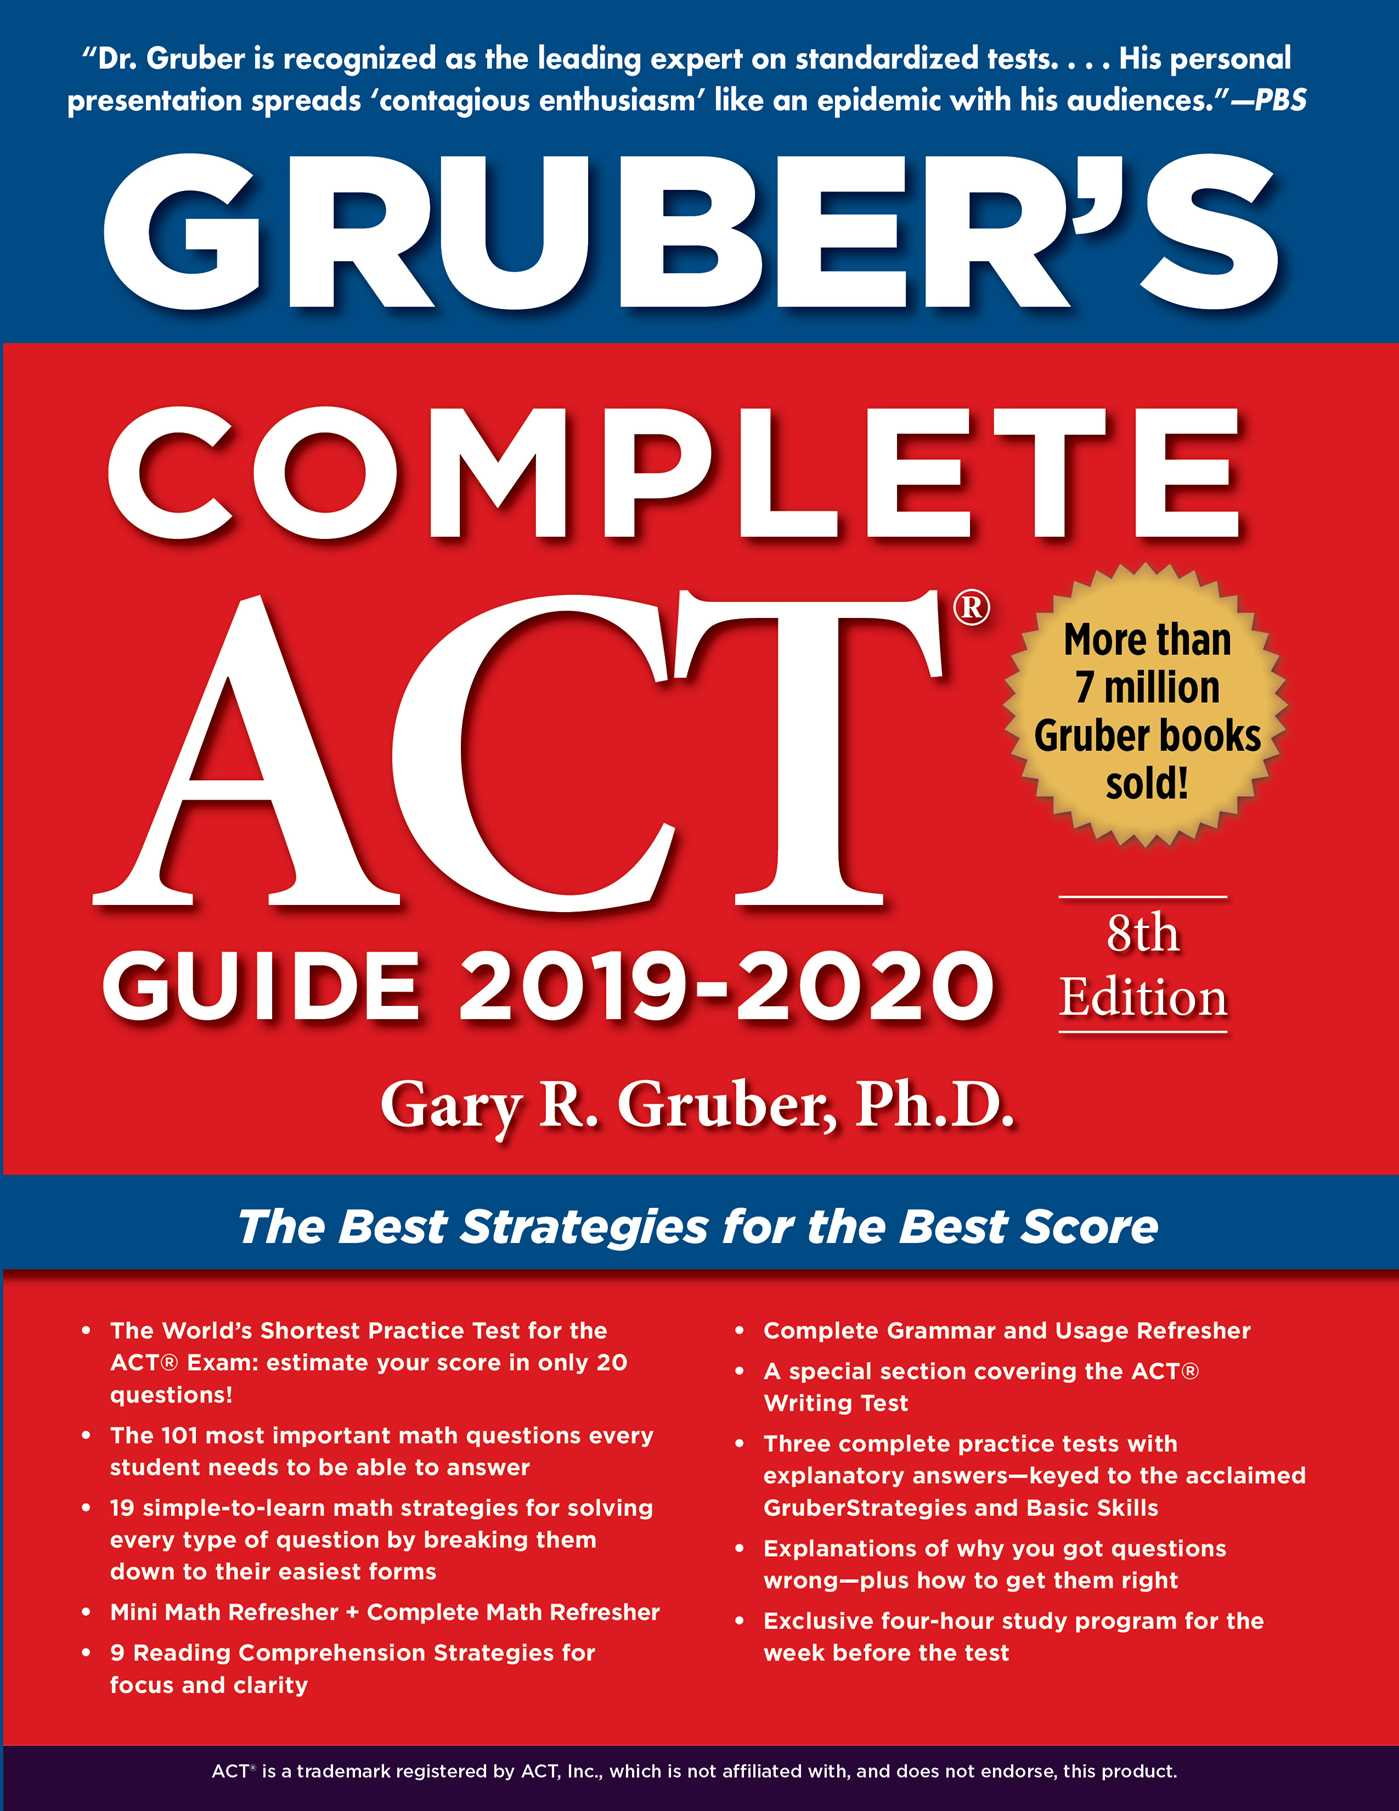 Gruber's Complete ACT Guide 2019-2020 | Book by Gary Gruber